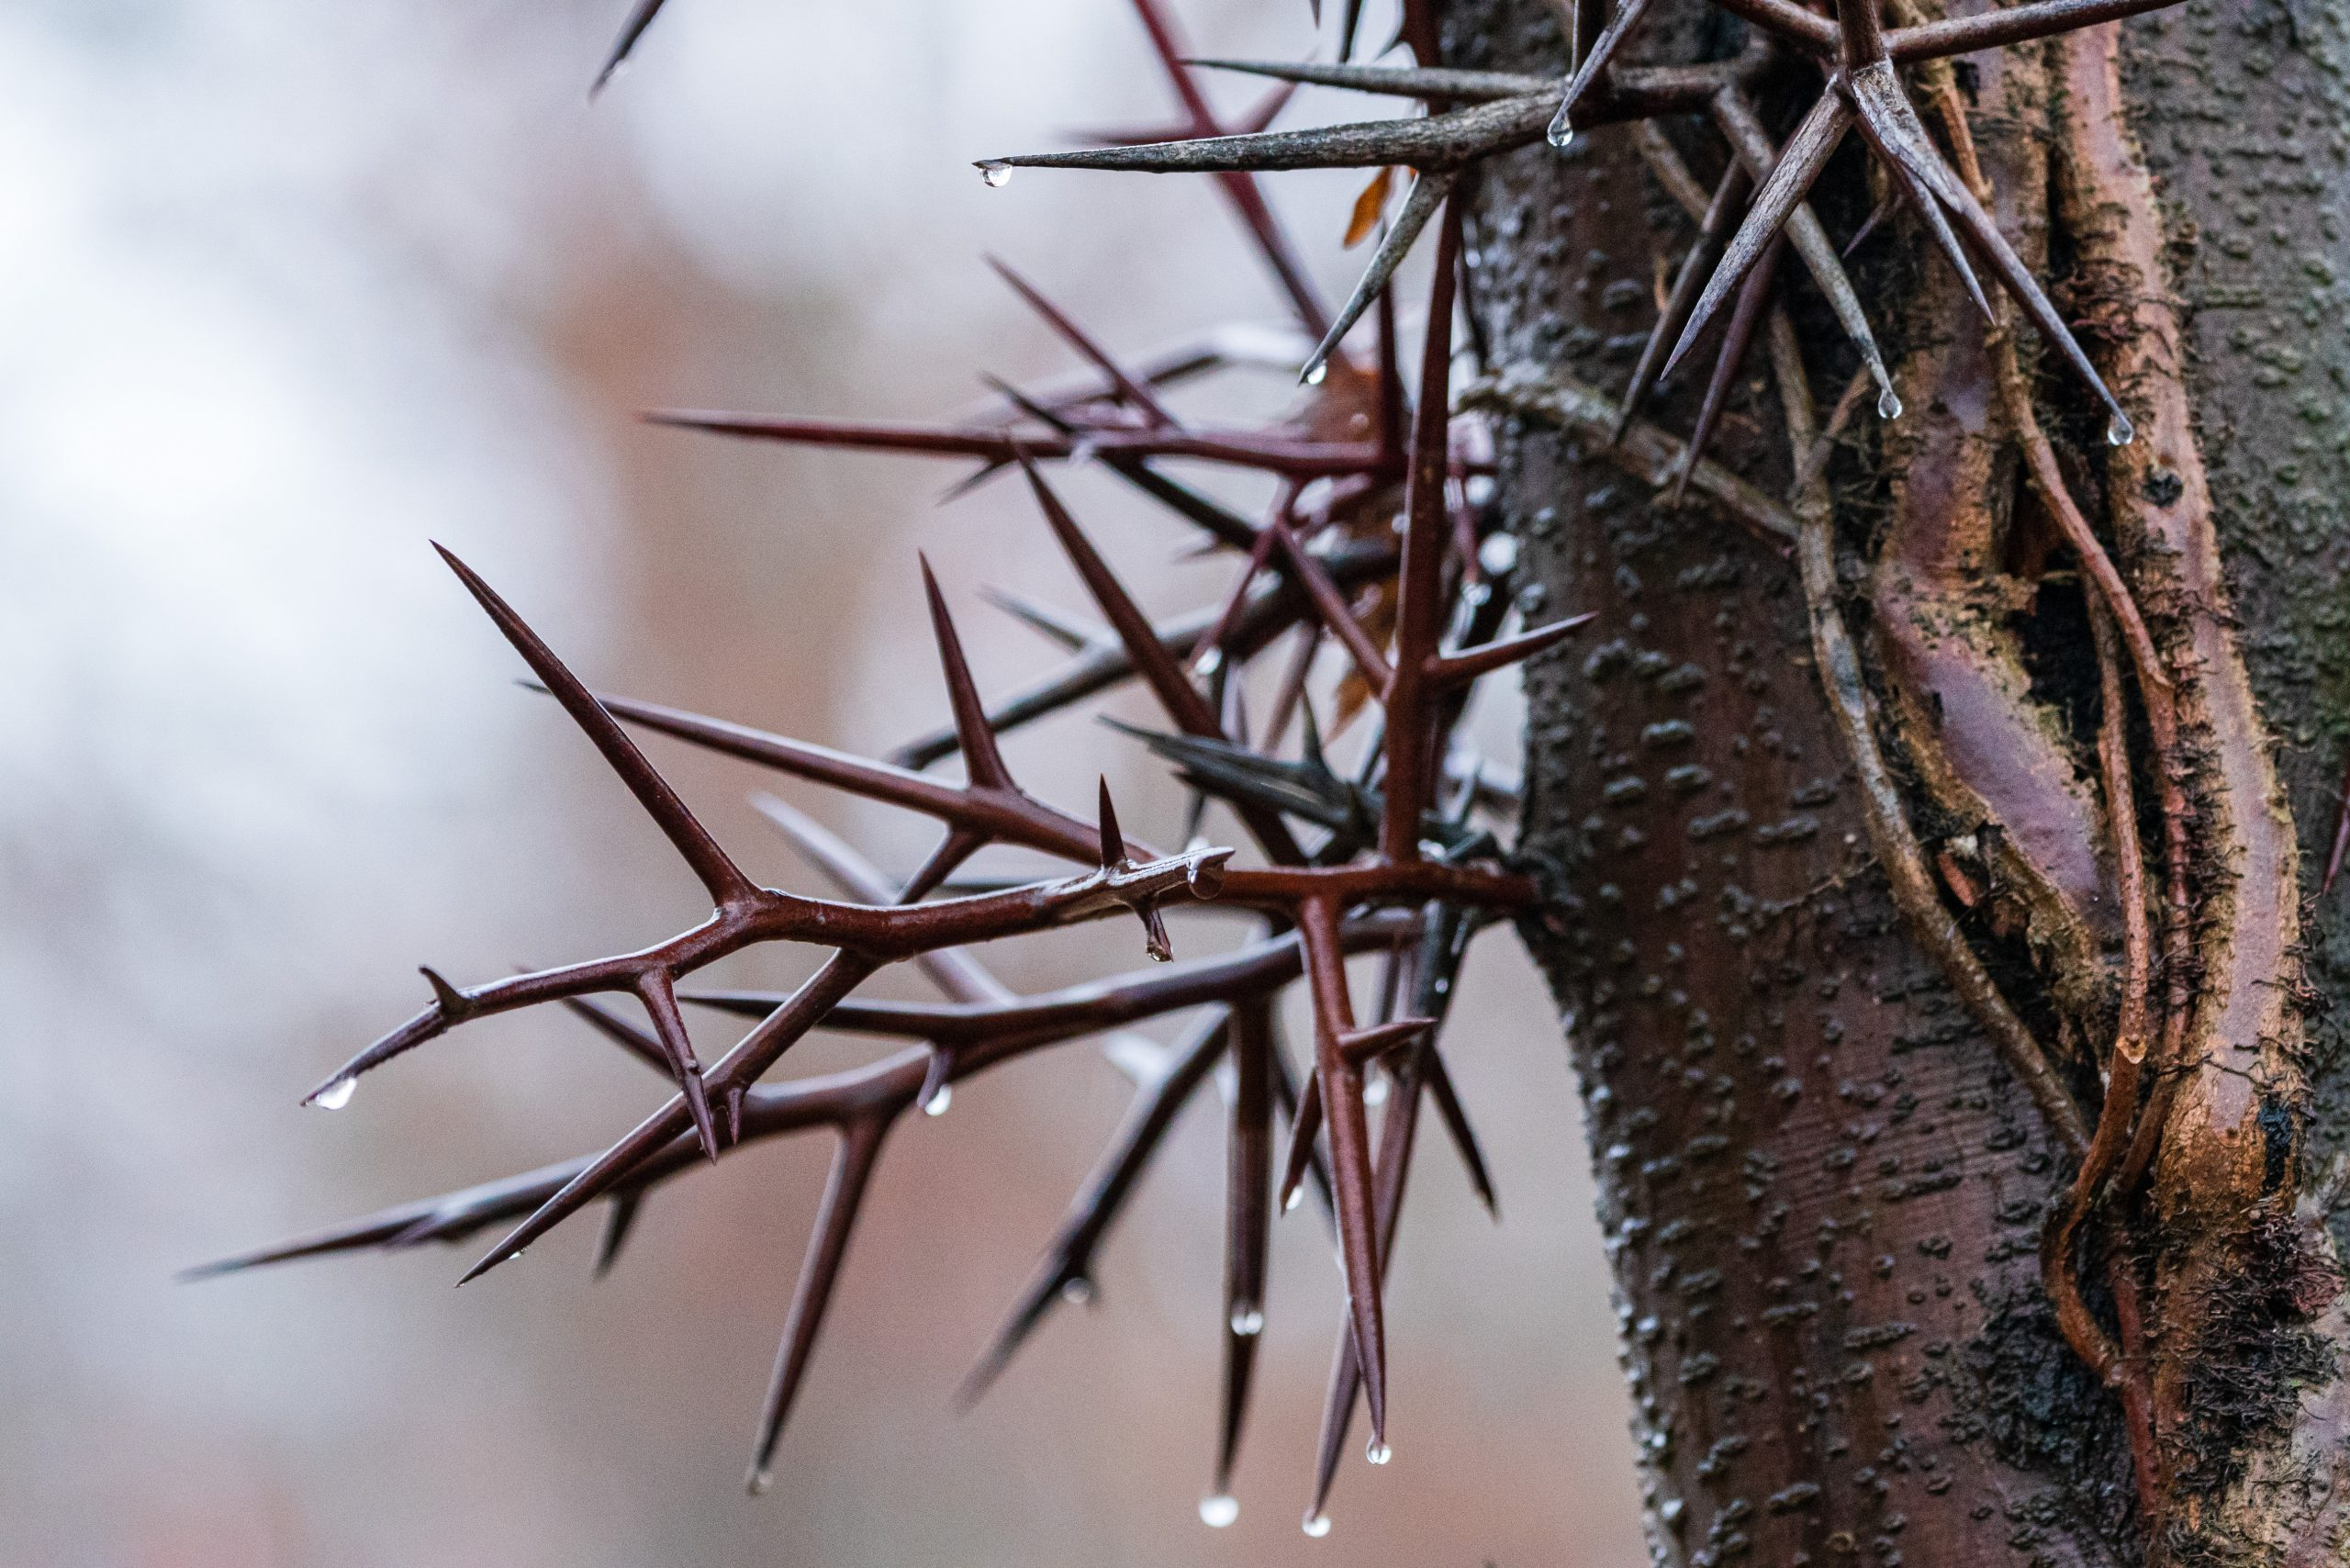 Thorns grow out of a honey locust tree. Raindrops drip from the thorns.